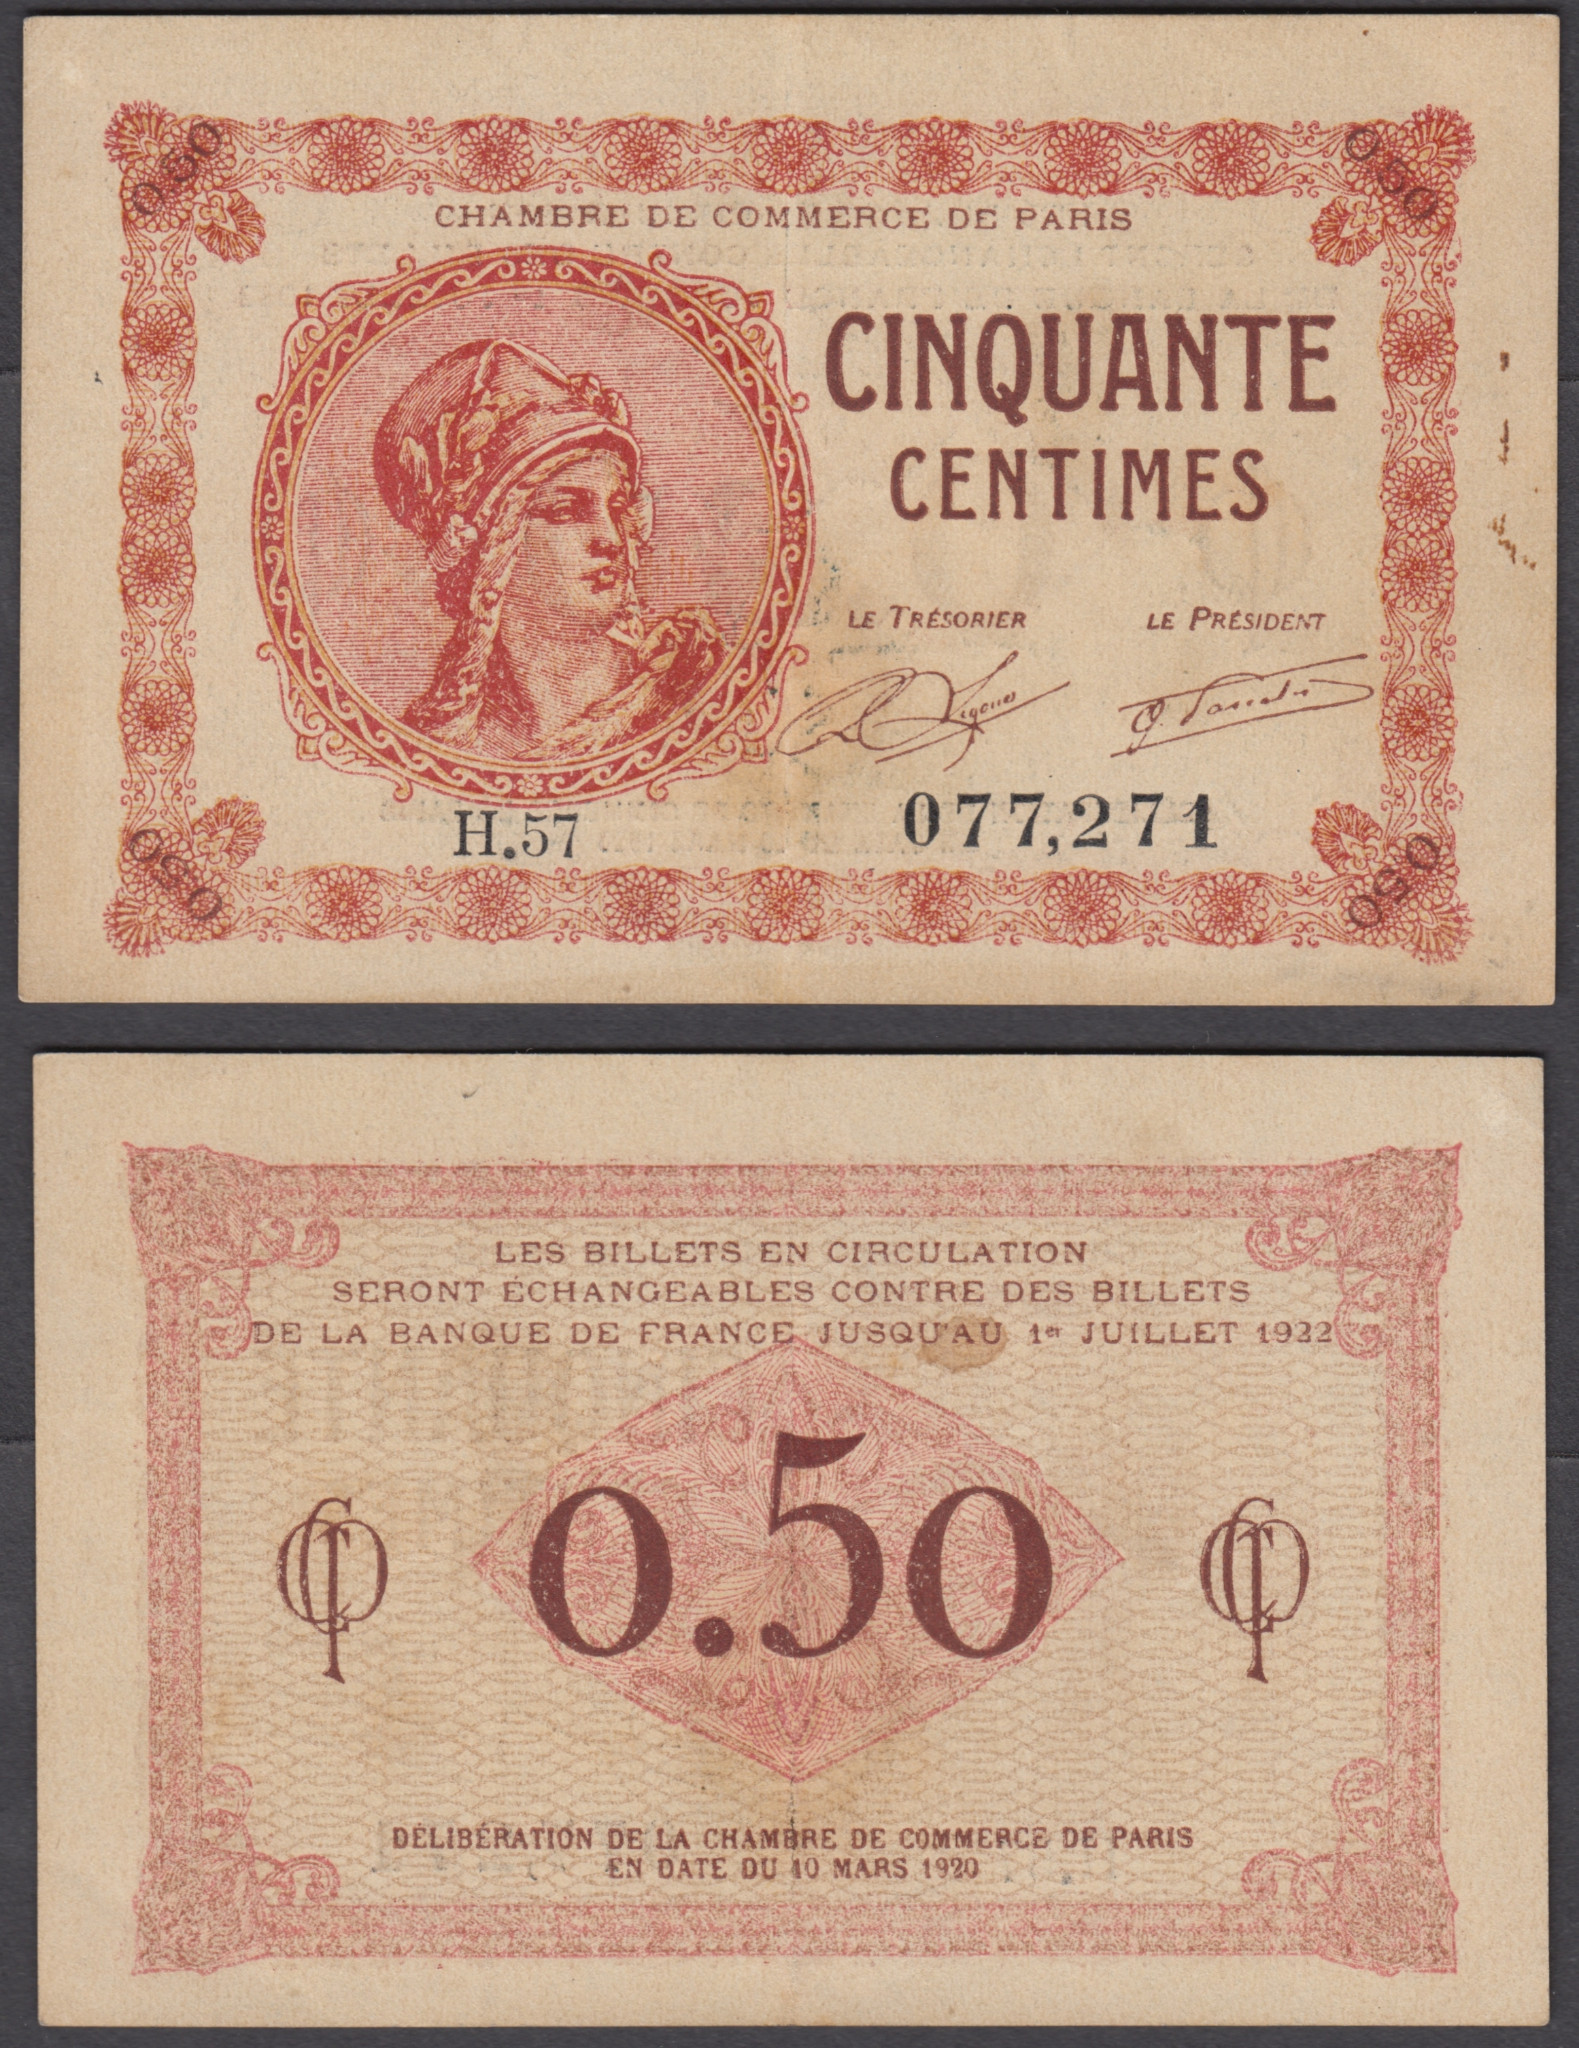 Chambre De Paris Details About France 50 Centimes 1920 Xf Crisp Banknote Paris Chambre De Commerce